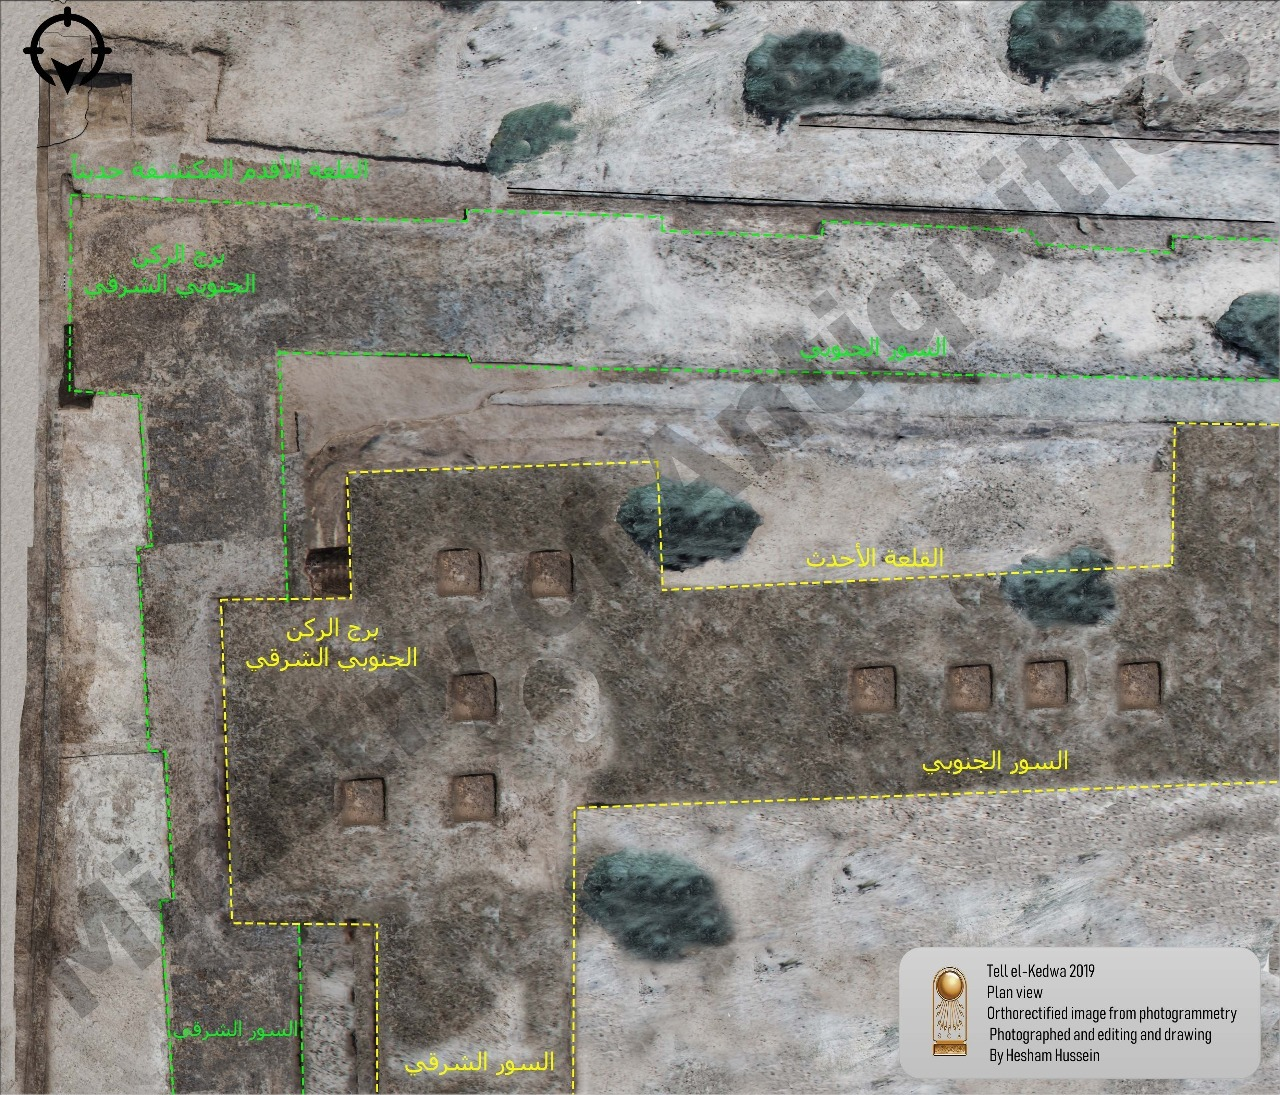 Part of 26th Dynasty fortress uncovered in North Sinai - The